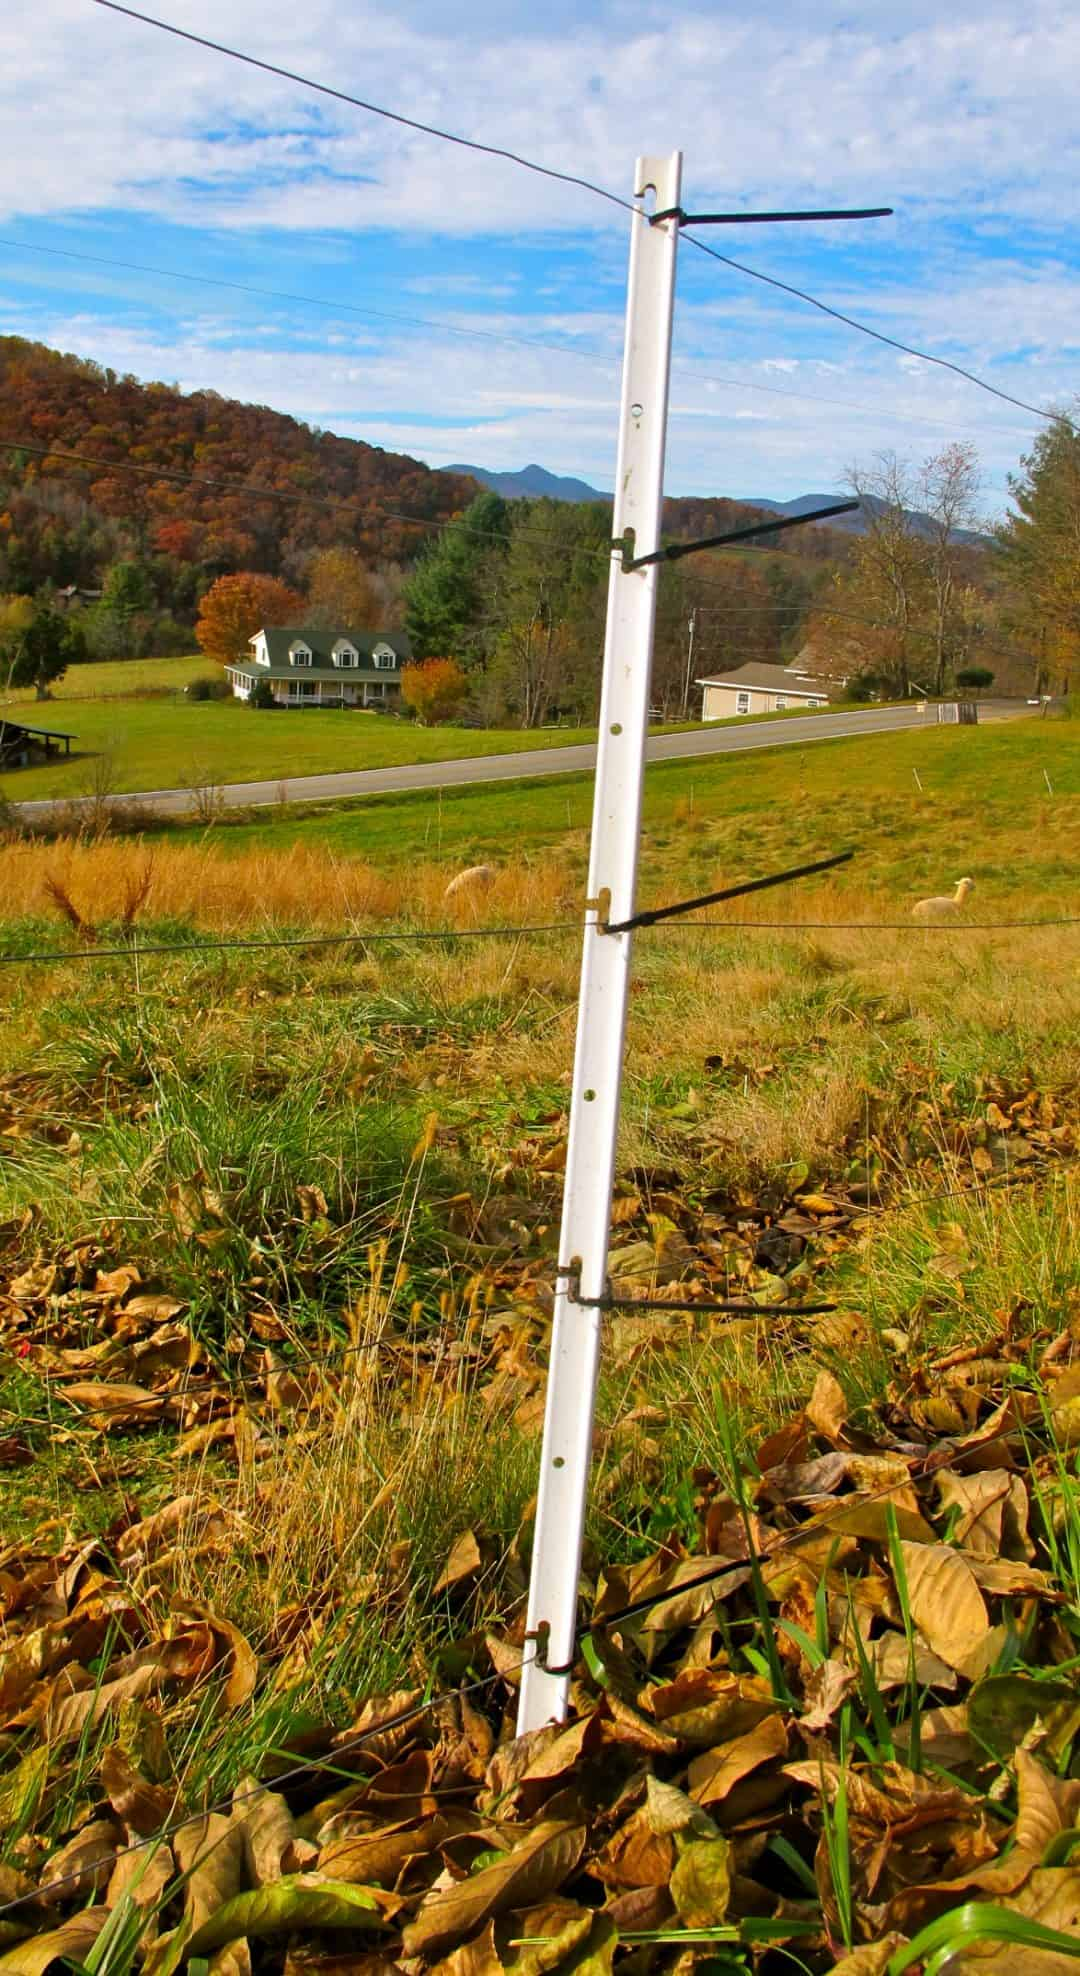 The Ultimate Guide to Fence Options of the Farm - The Free Range Life